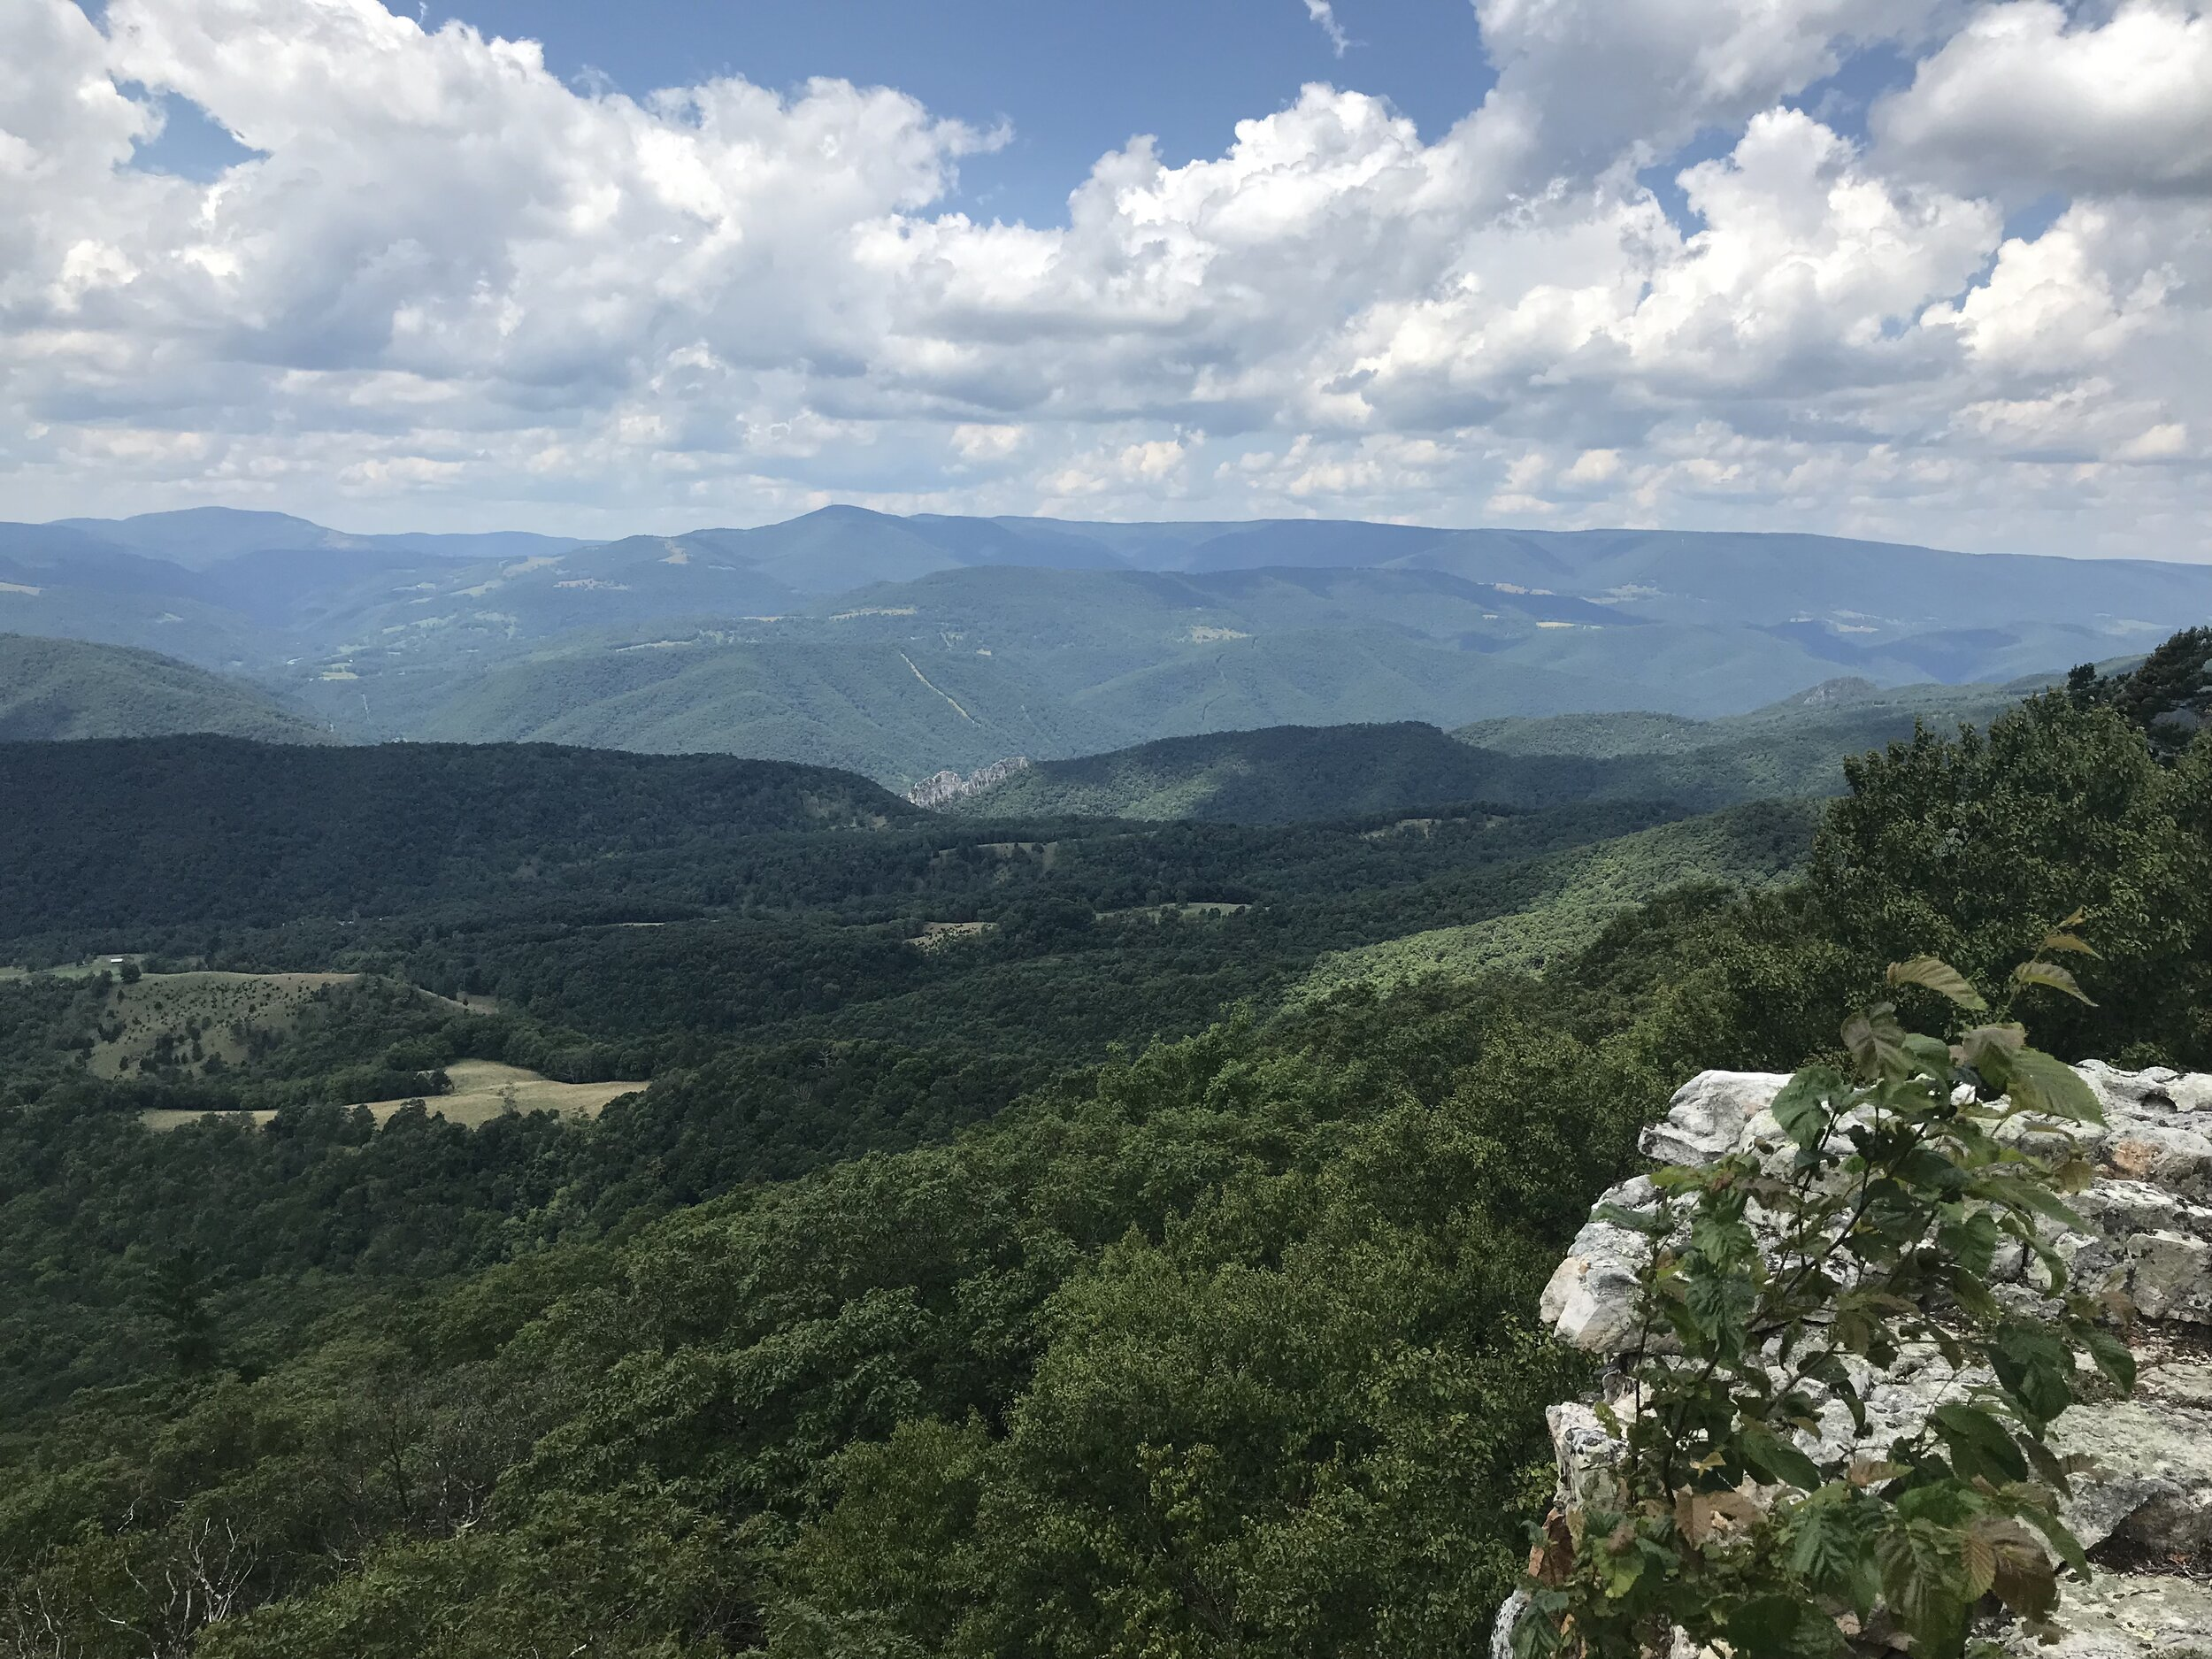 One of the views from the ridge on North Fork Mountain Trail